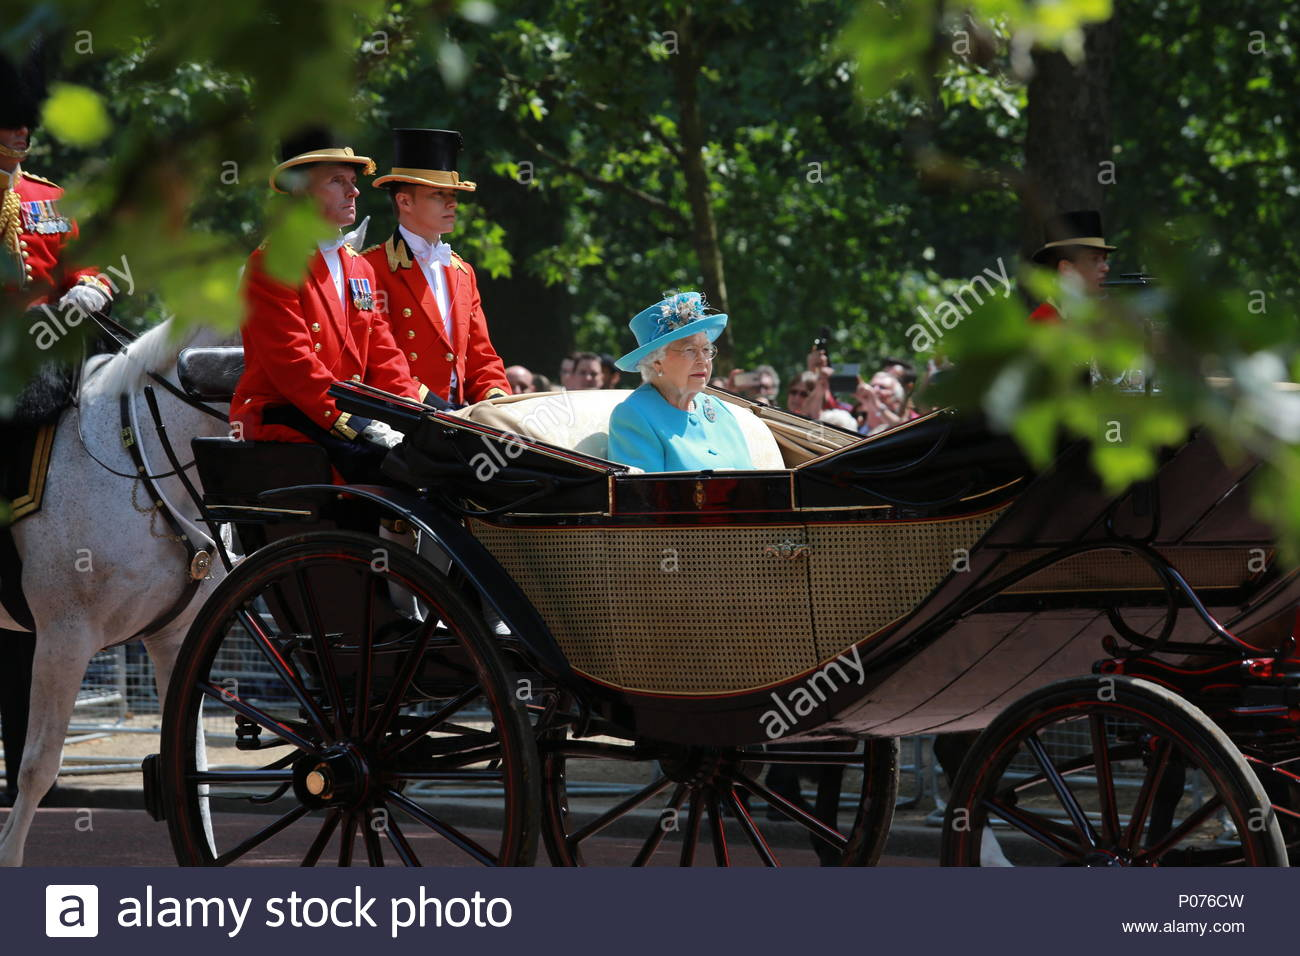 London, UK, 9 June 2018. The annual Trooping the Colour has taken place in London in honour of Queen Elizabeth's birthday. Thousands lined the streets to welcome Her Majesty and other members of the Royal Family as they travelled by coach from Buckingham Palace to Horse Guards Parade. Here the Queen's carriage returns down the Mall towards Buckingham Palace Credit: Clearpix/Alamy Live News Stock Photo